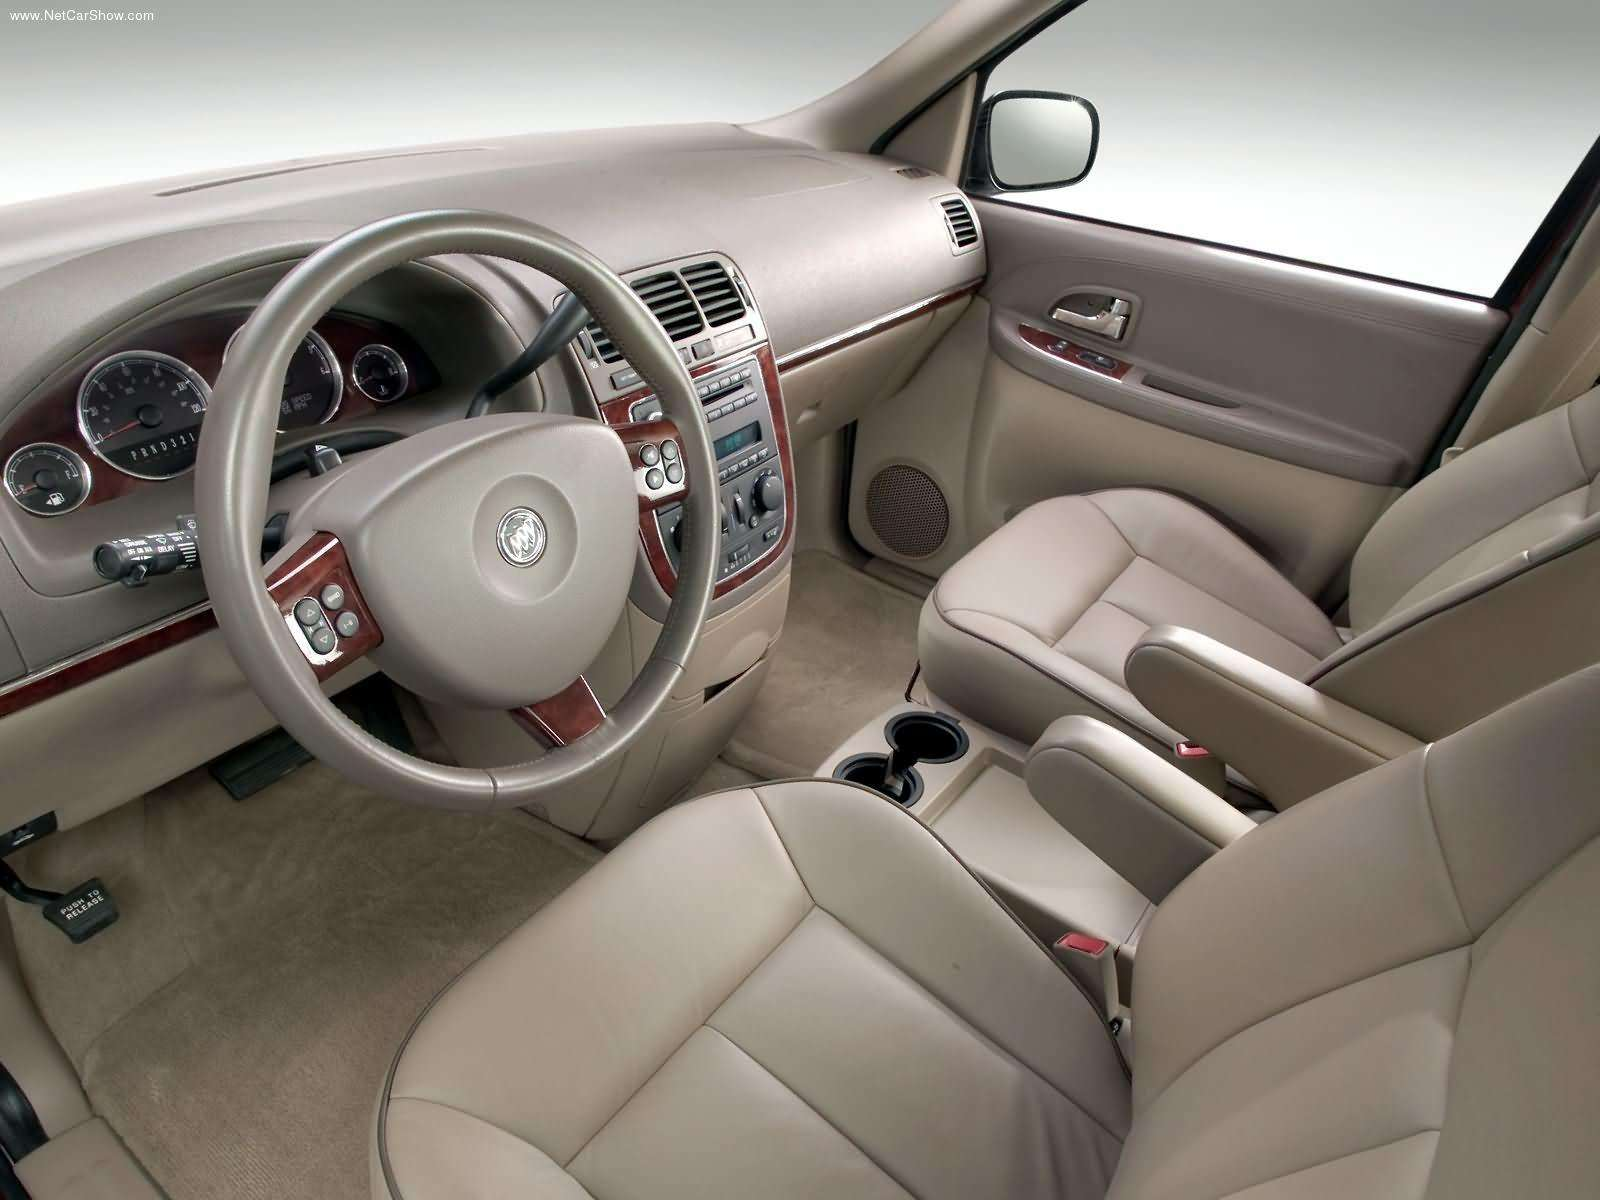 buick terraza images #5